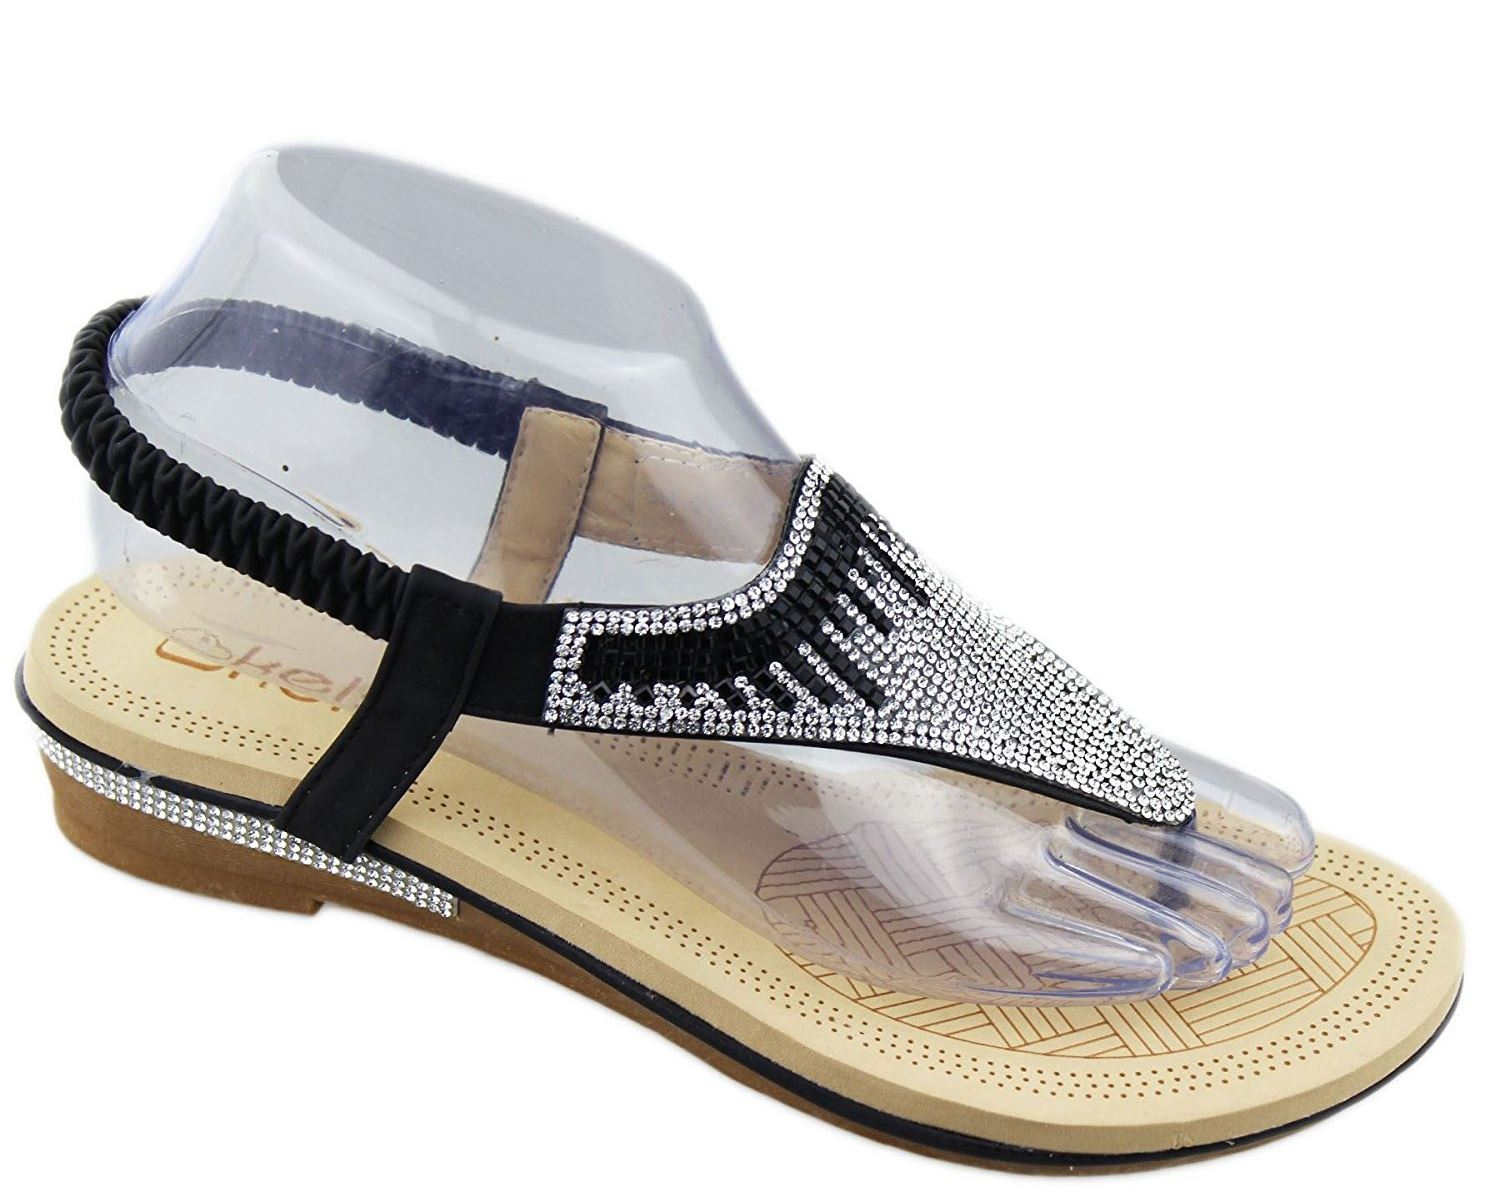 New Womens Diamante Sparkly Flat Open Toe Summer Slippers